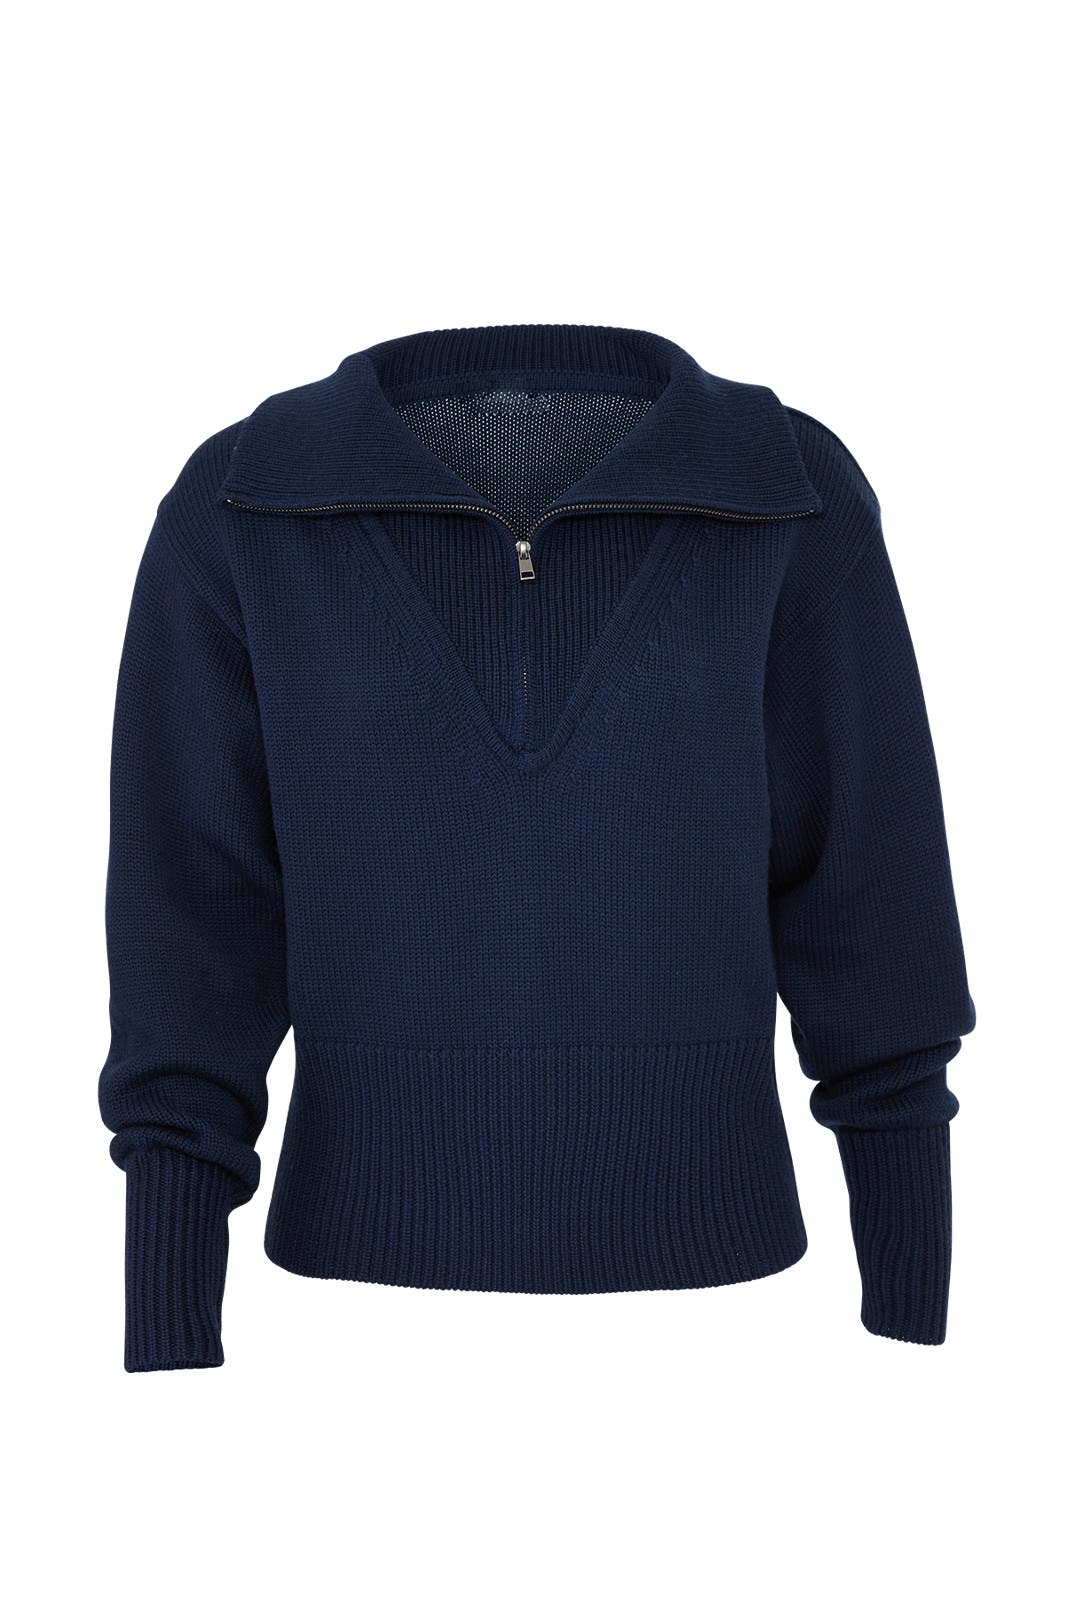 Navy Zip Up Sweater by Jil Sander Navy for  105  bab0e72a65230